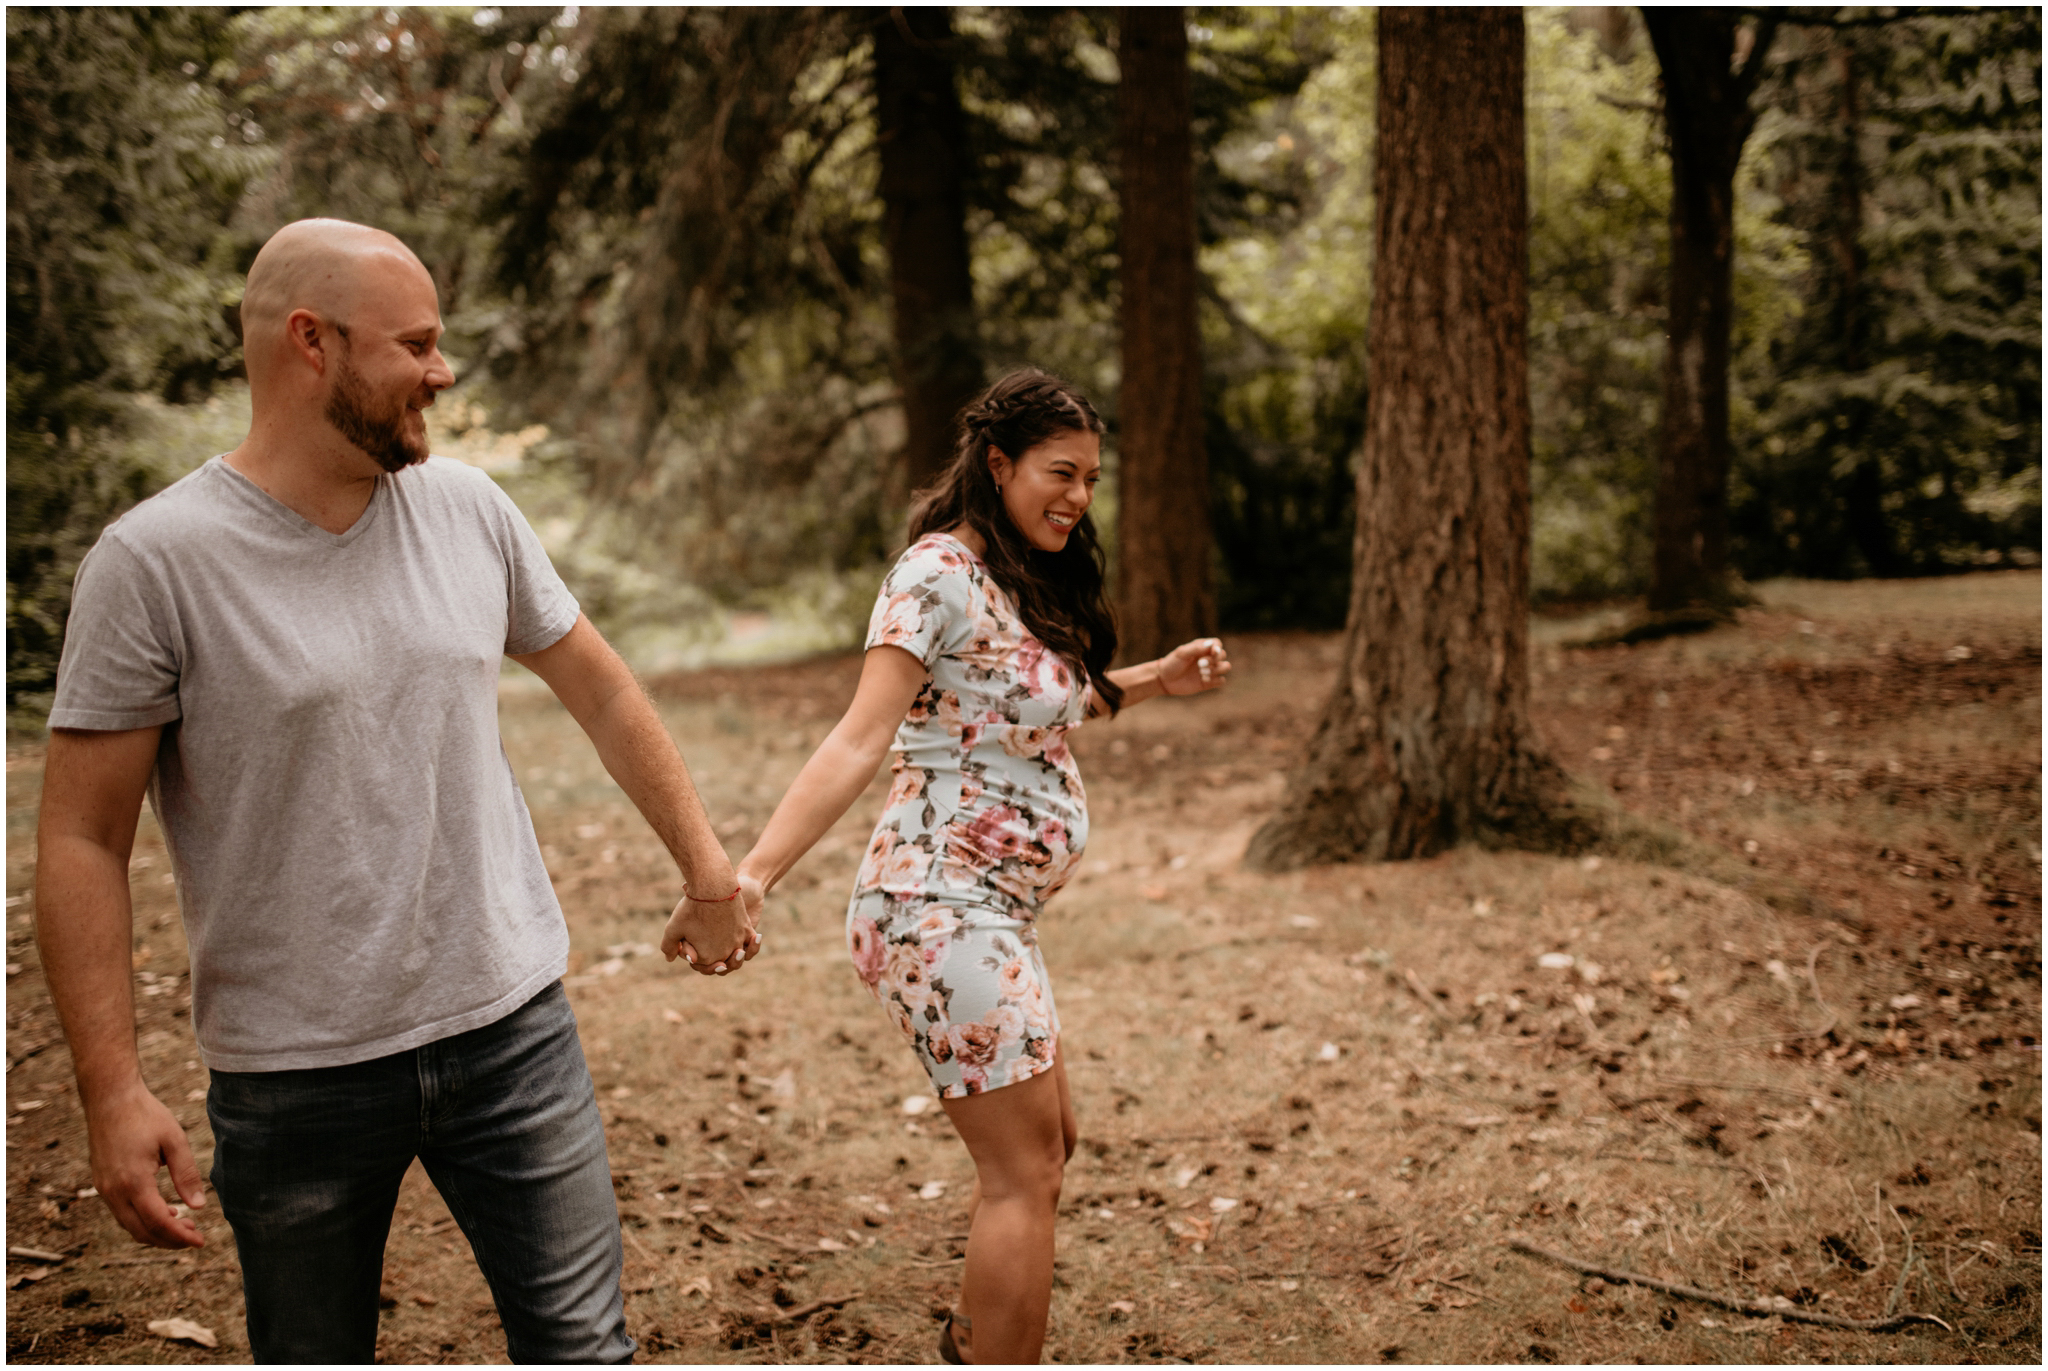 caitlin-jake-maternity-session-seattle-portrait-photographer-021.jpg